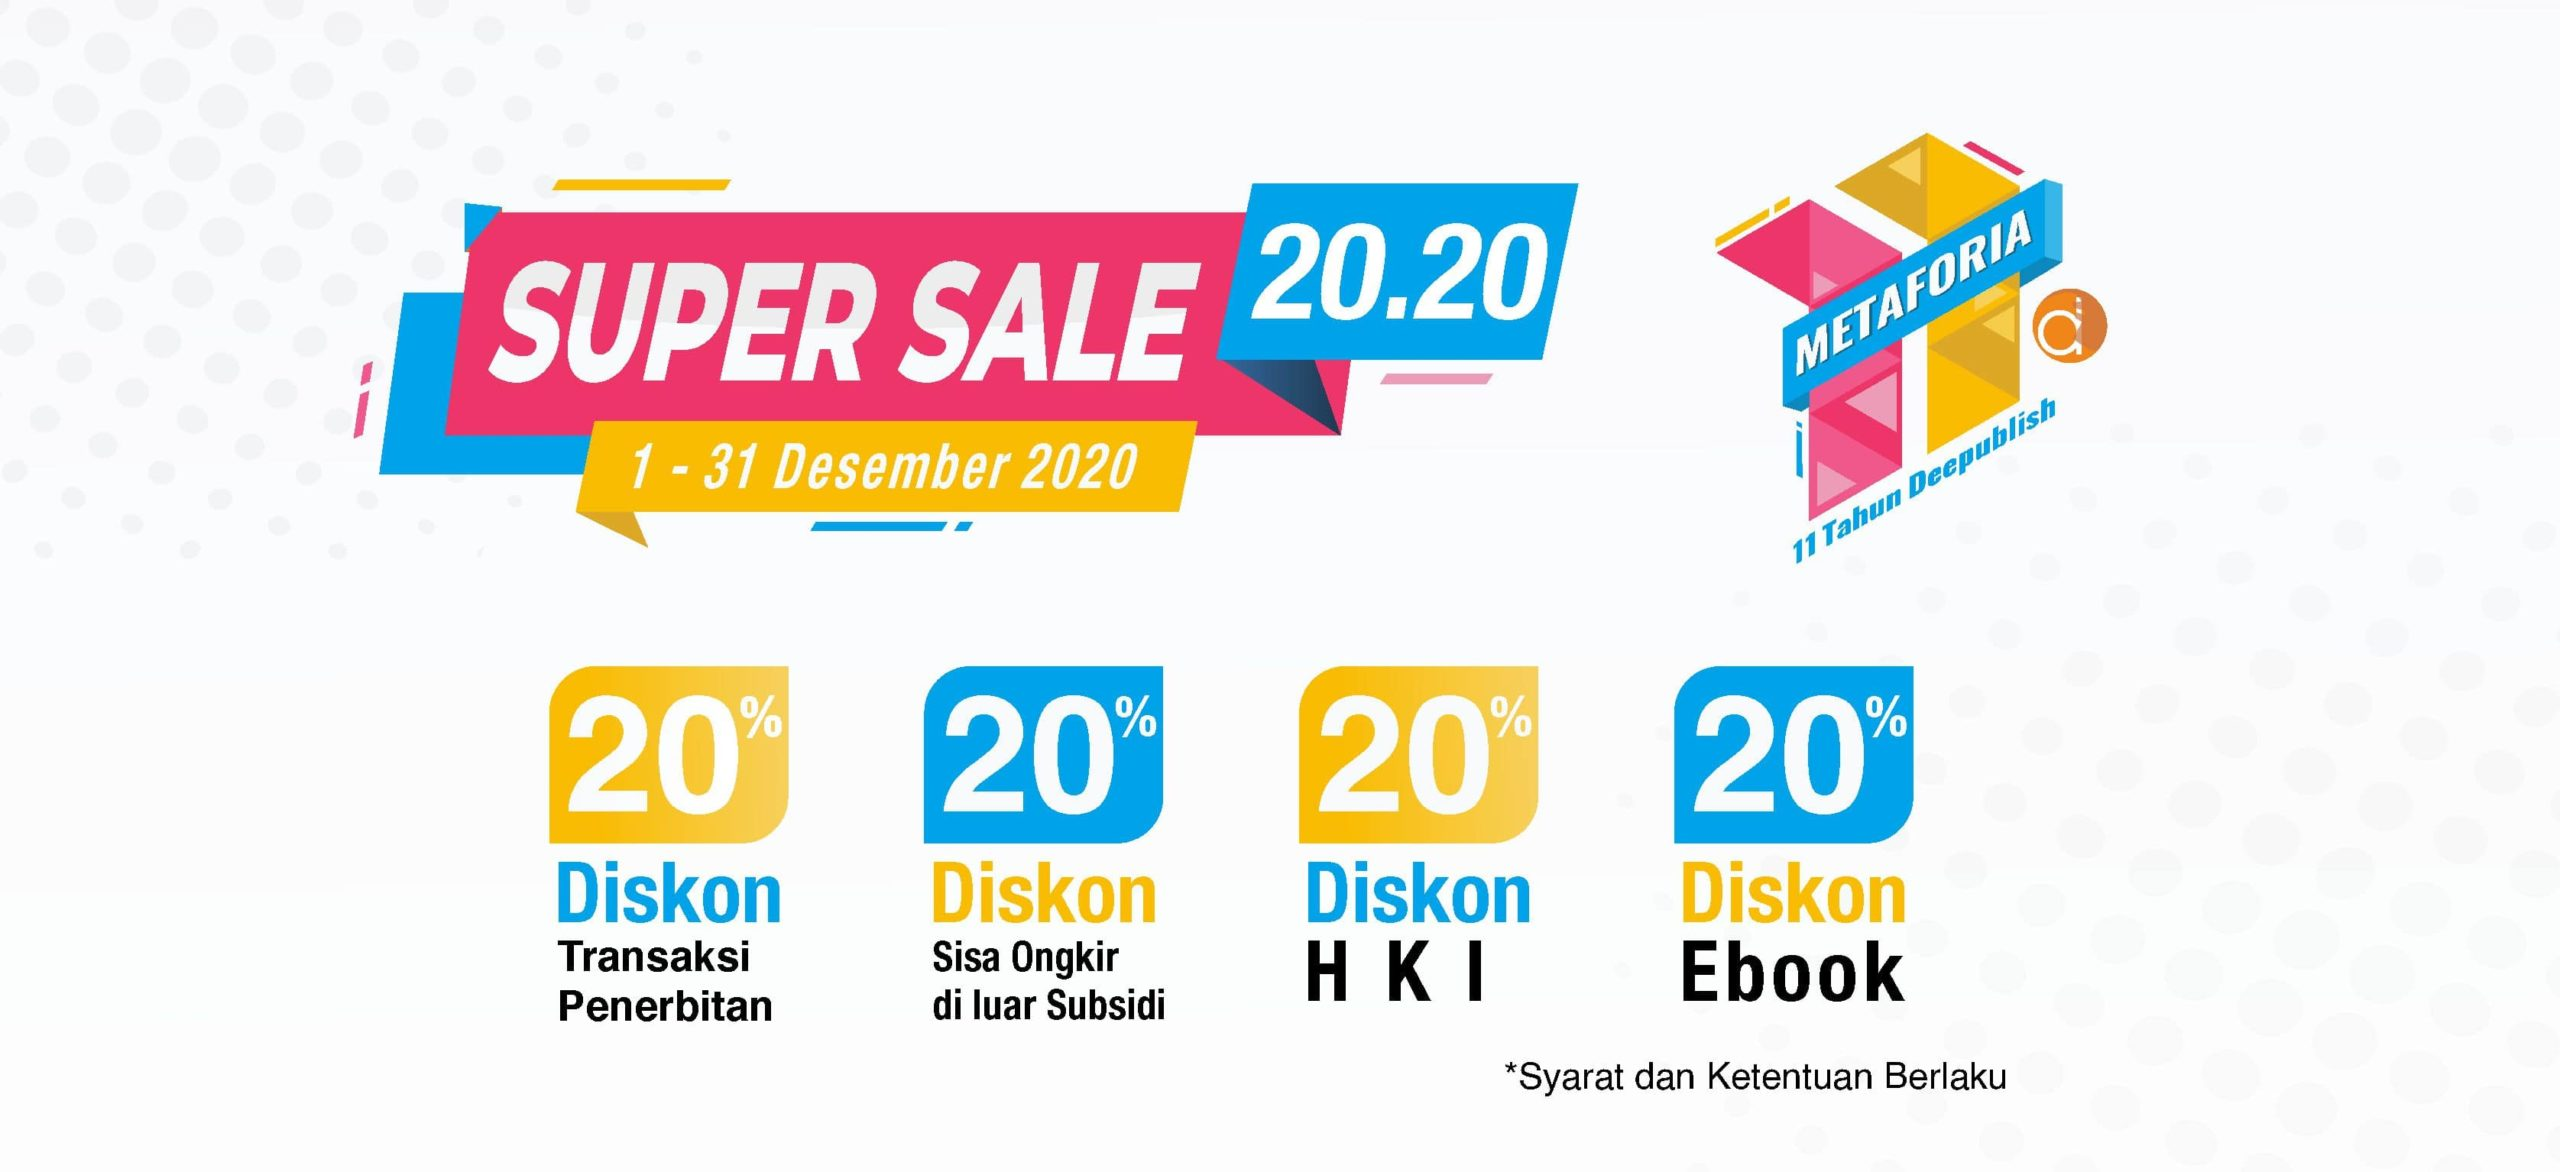 promo penerbit buku deepublish